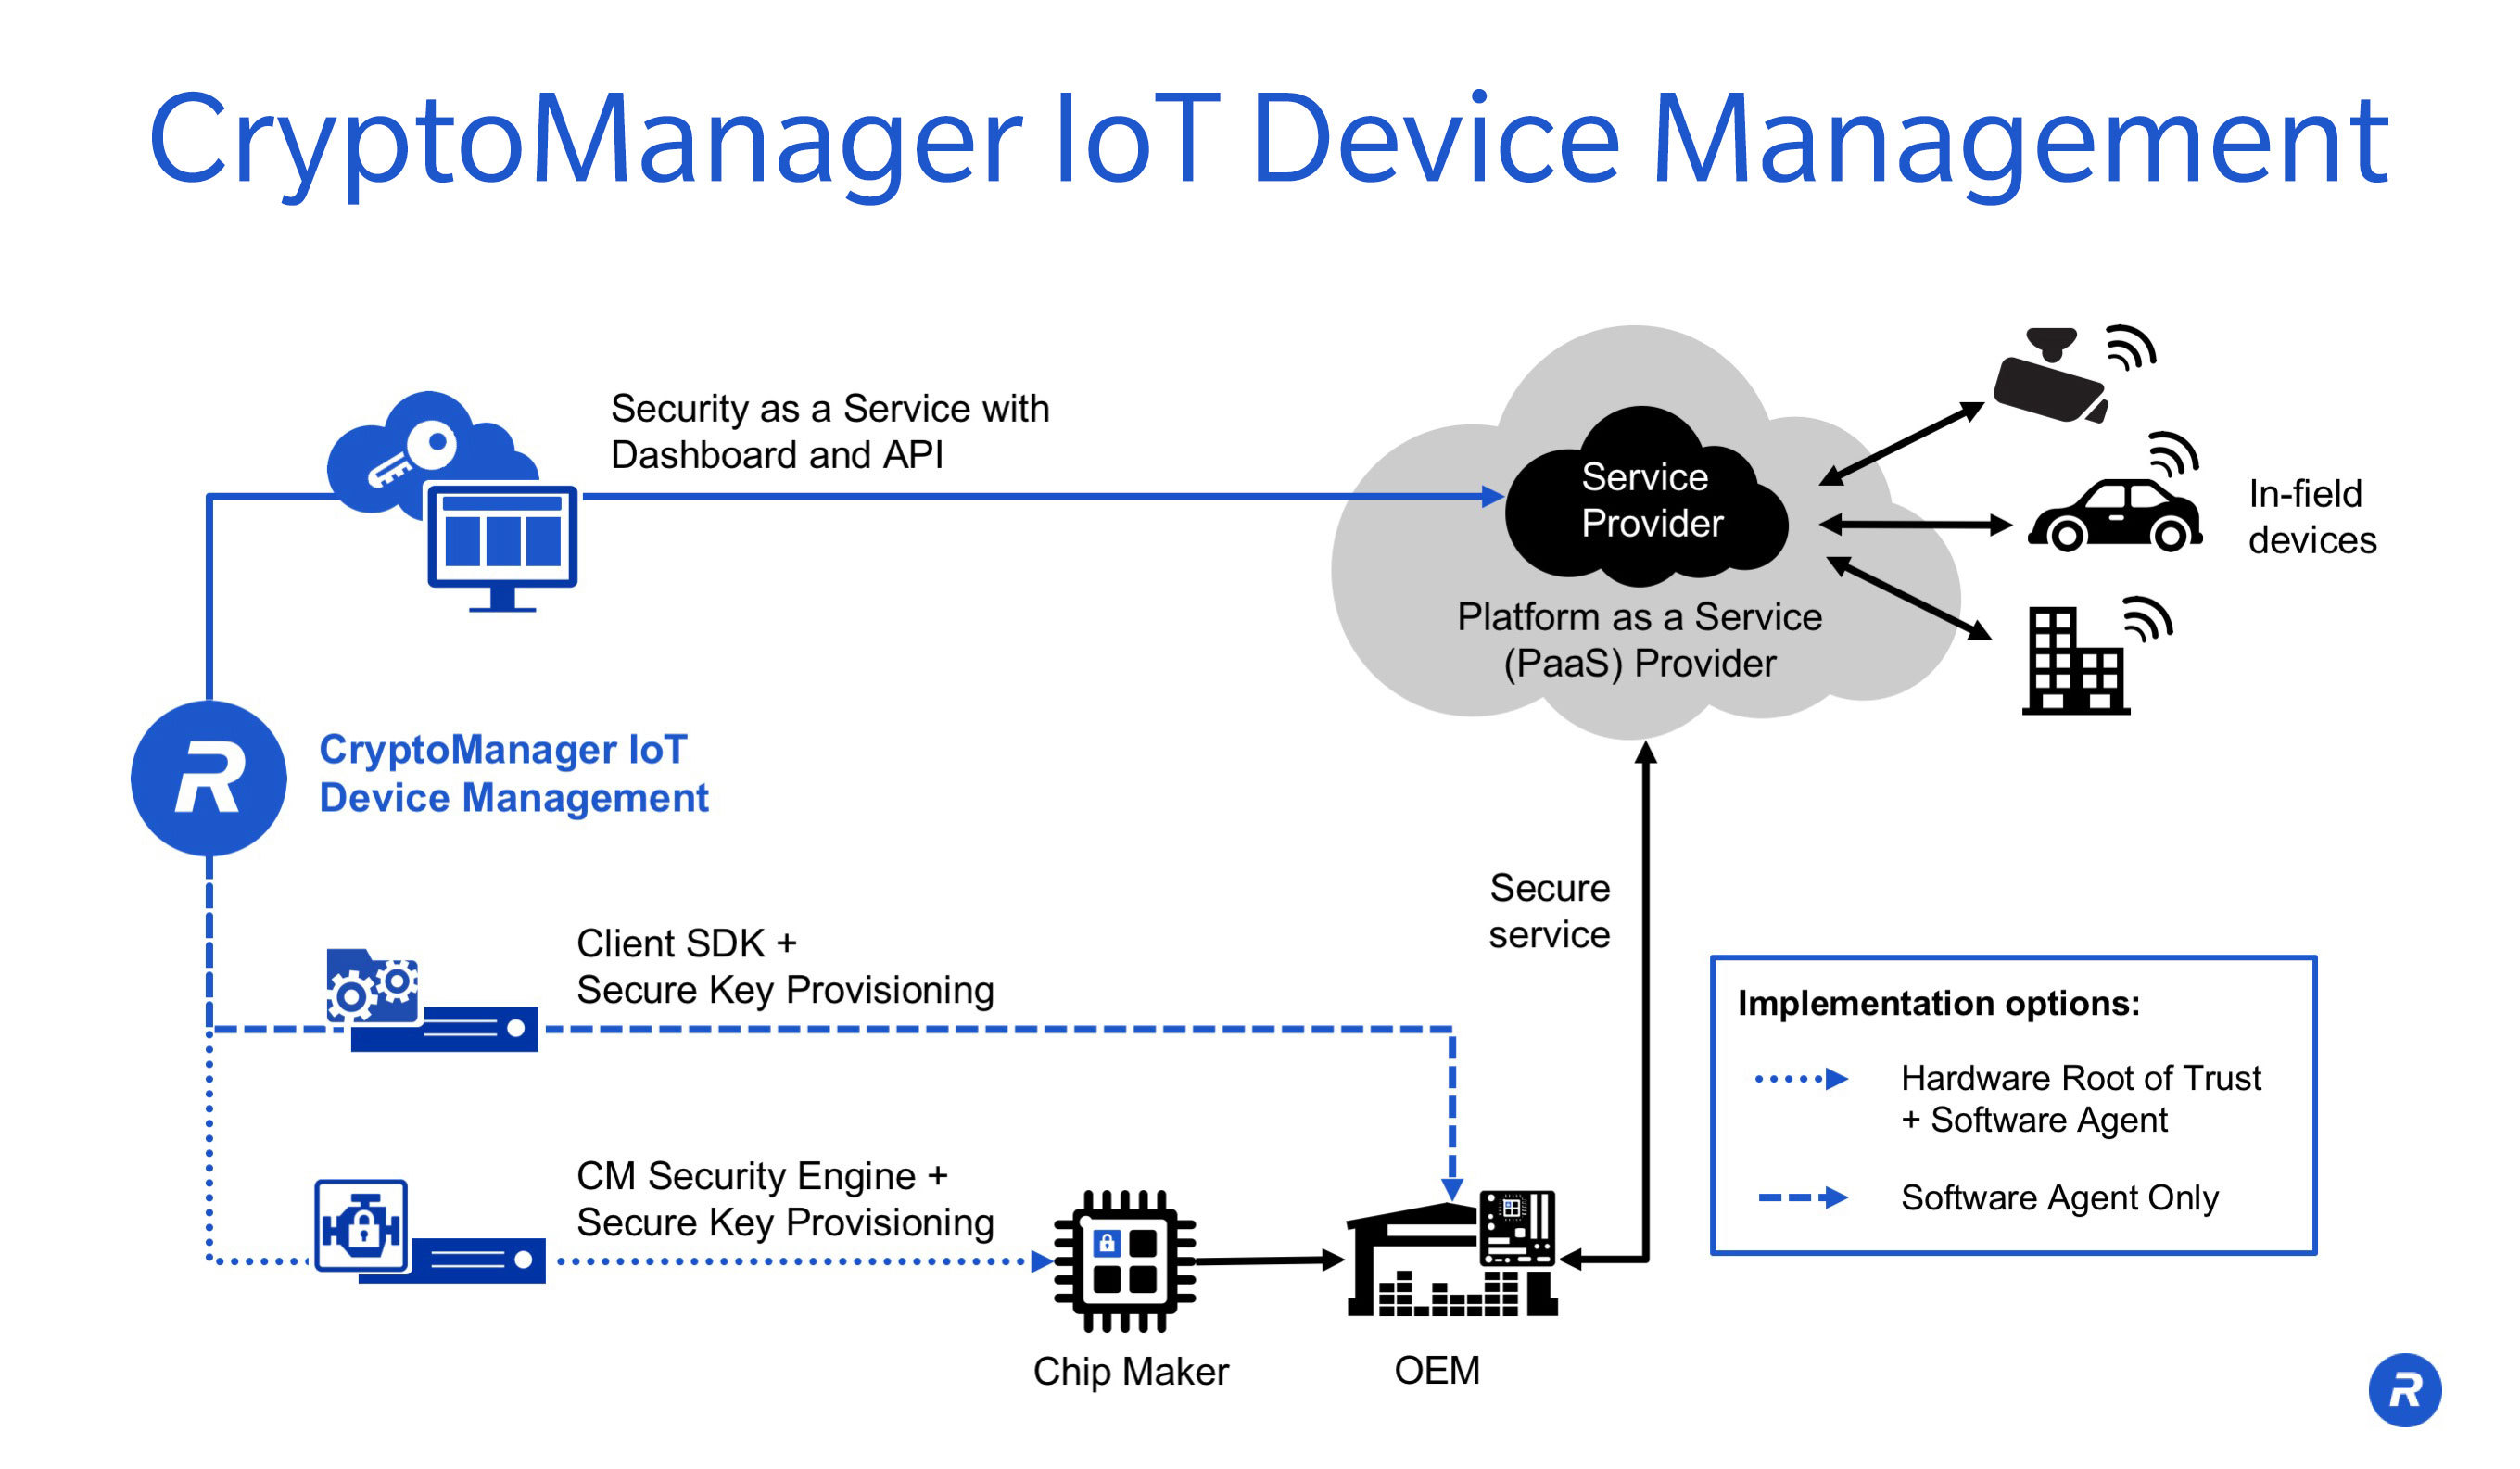 Rambus CryptoManager™ IoT Device Management Ecosystem (Graphic: Rambus)